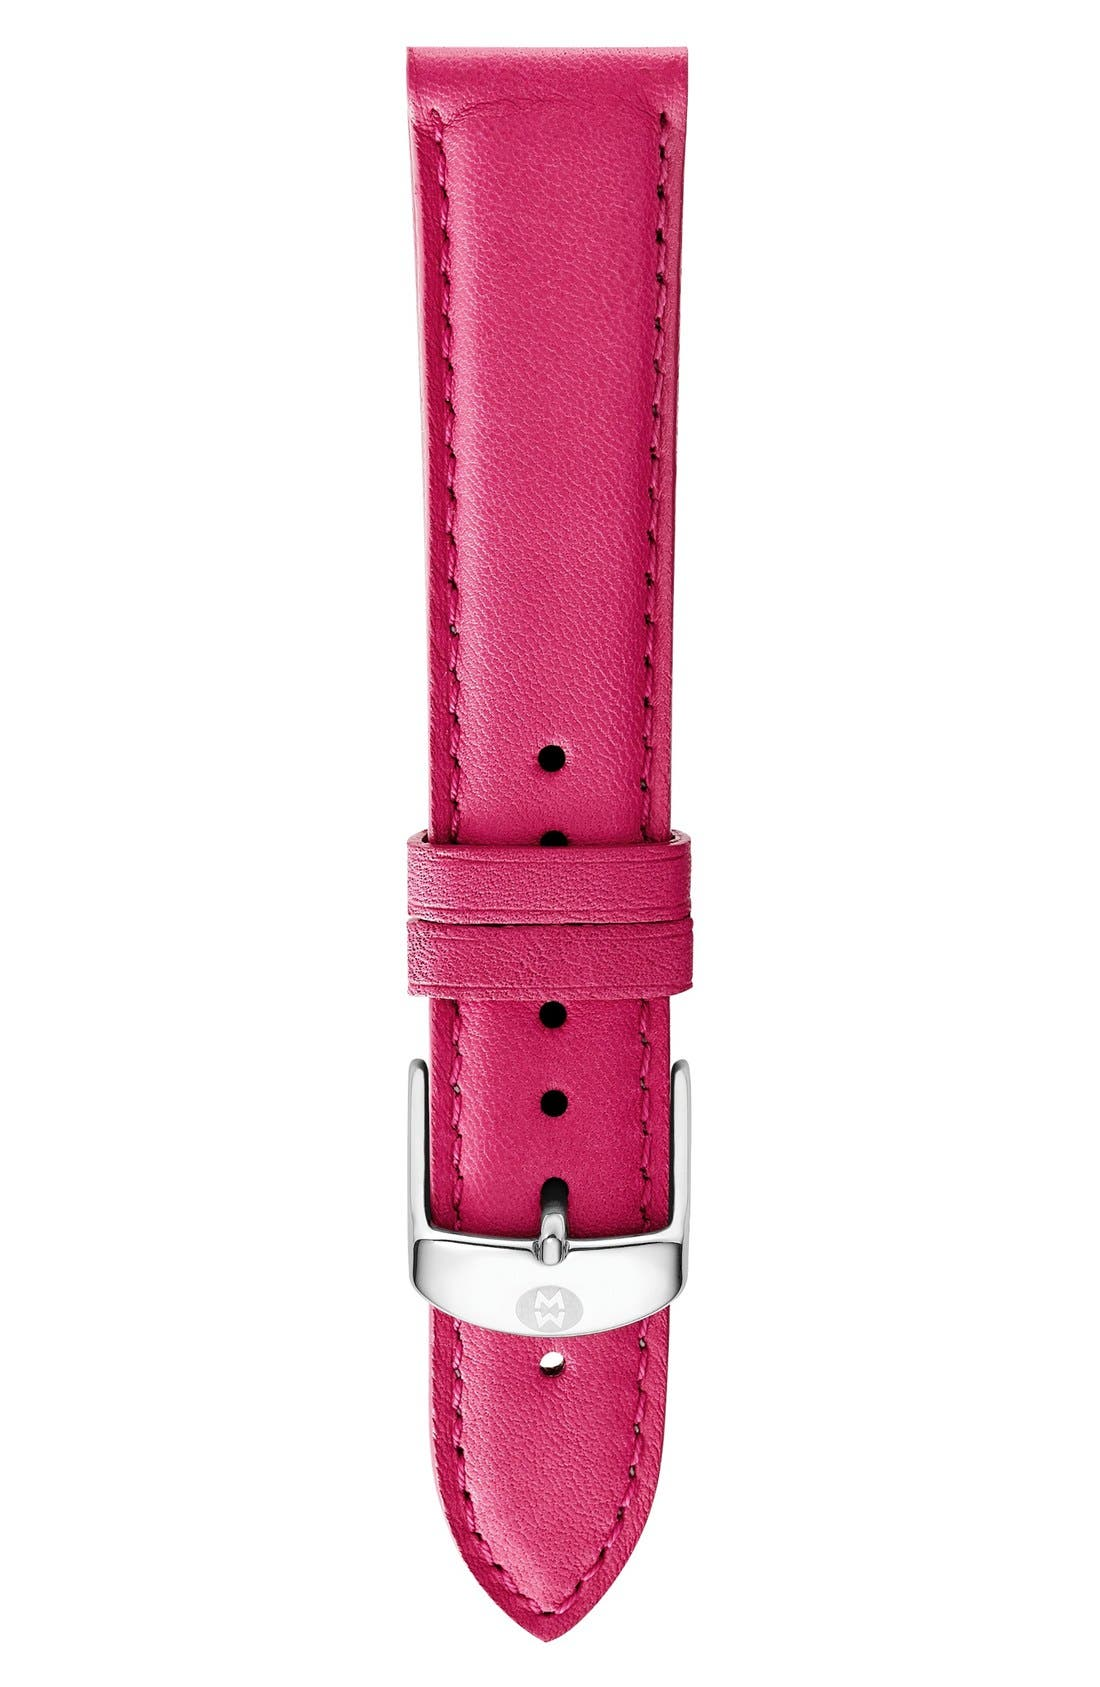 16mm Leather Watch Strap,                             Main thumbnail 18, color,